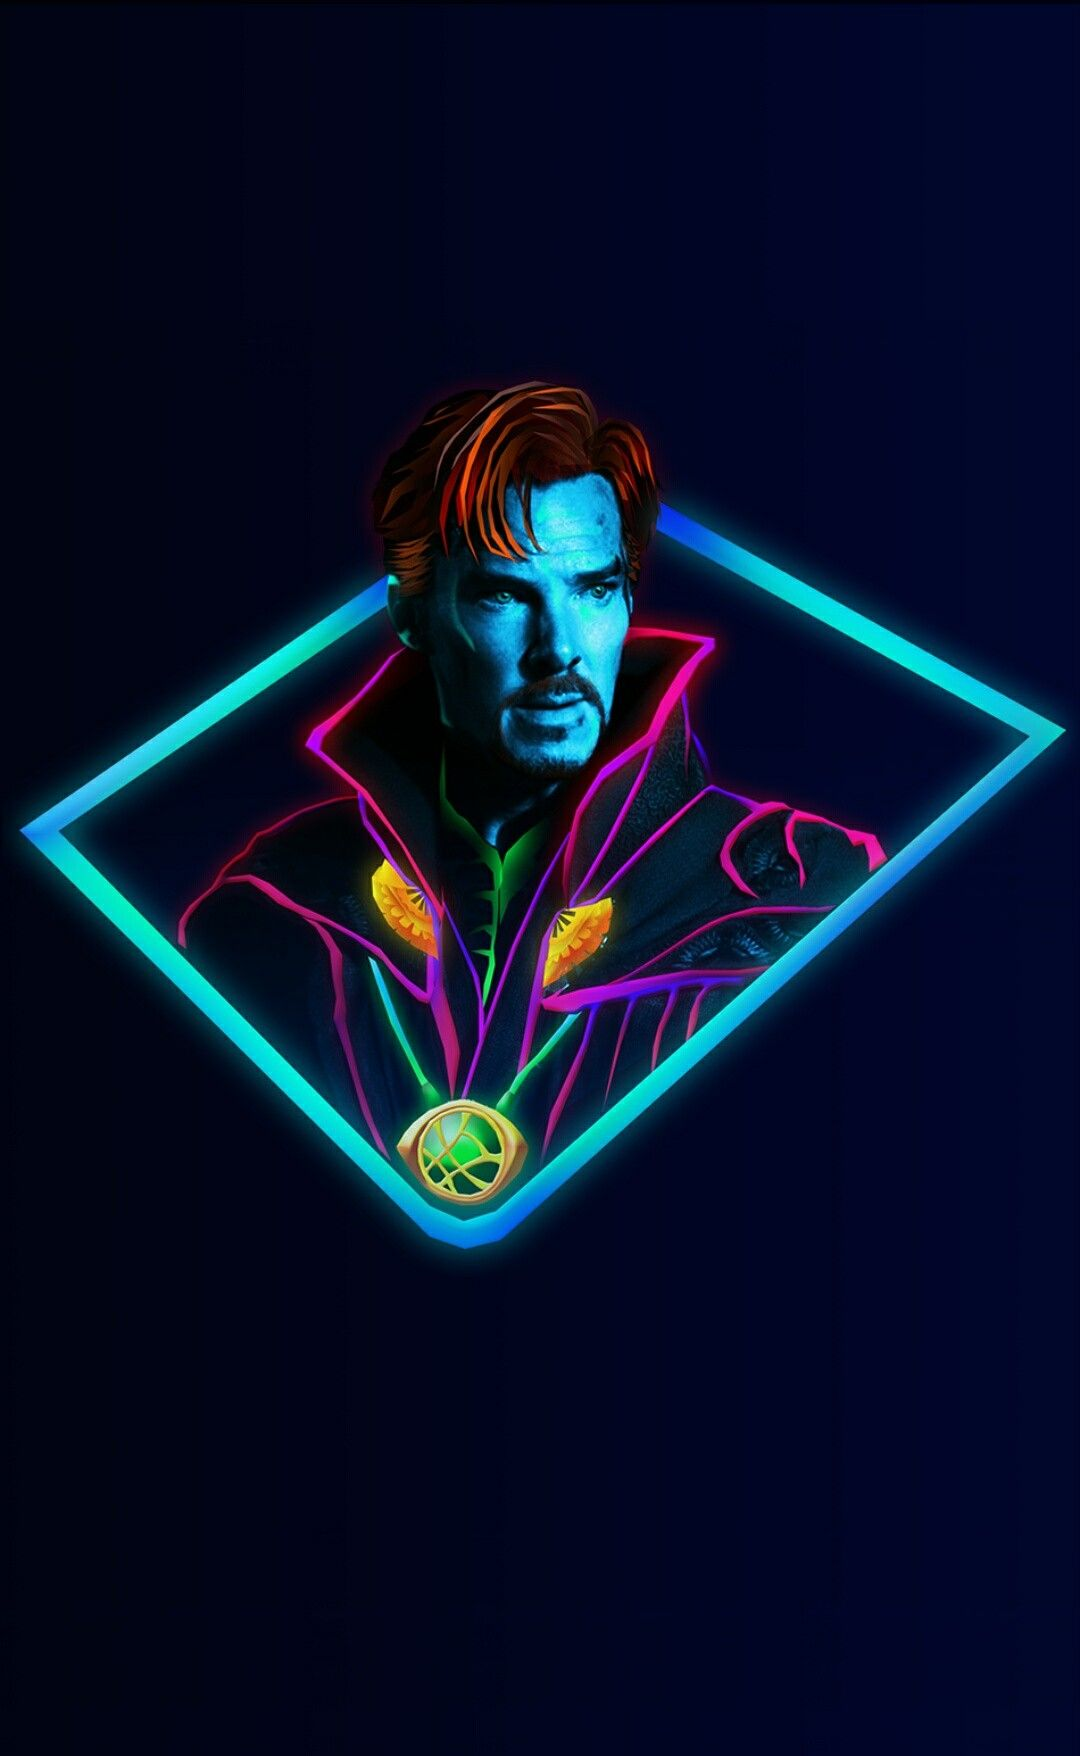 Doctor Strange Marvel Neon Wallpaper Avenger Marvel Wallpaper